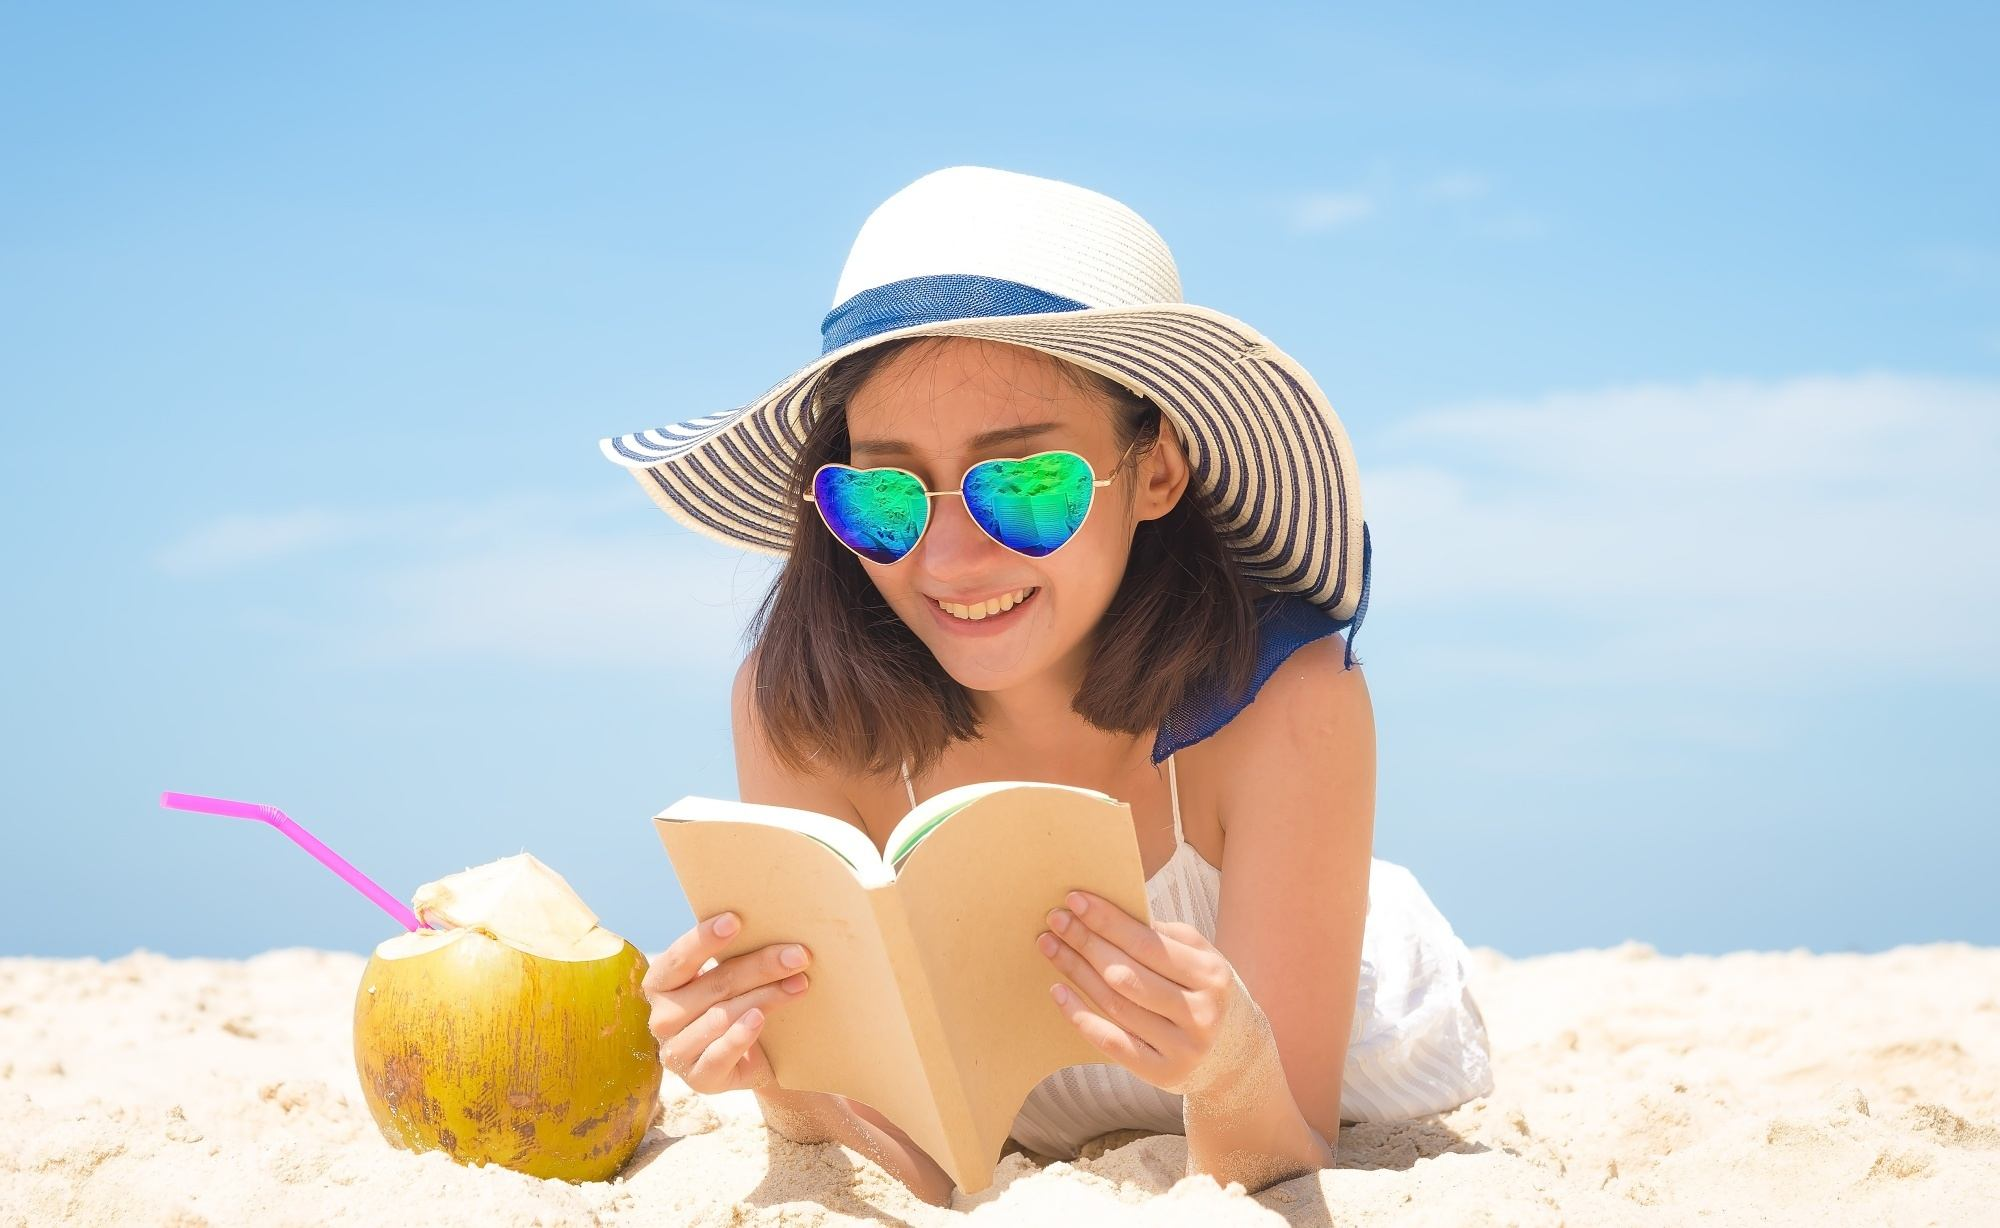 Great summer hair: Woman wearing a hat and sunglasses reading a book on the beach